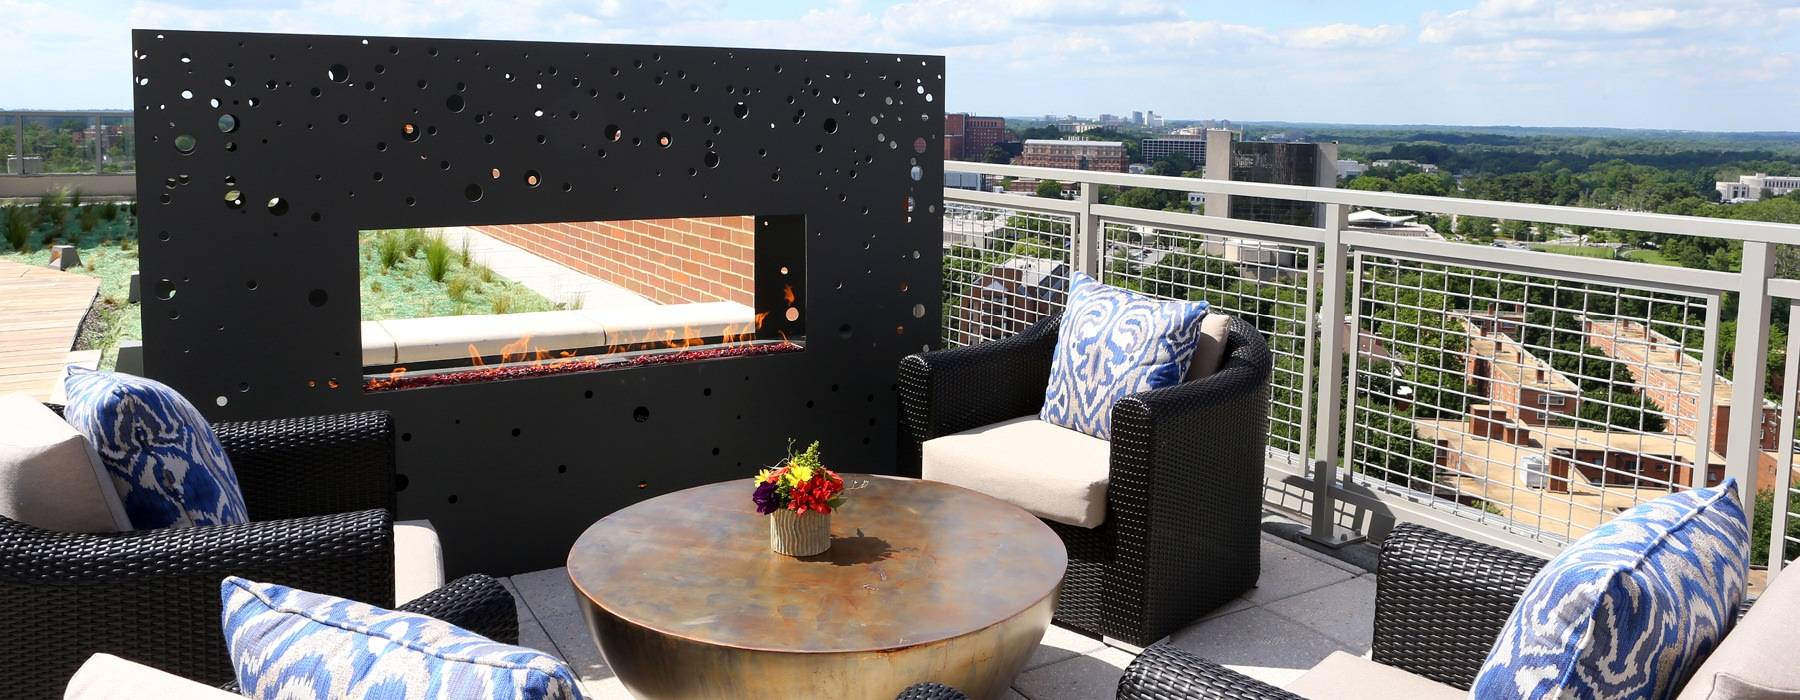 open rooftop fireplace with down town views